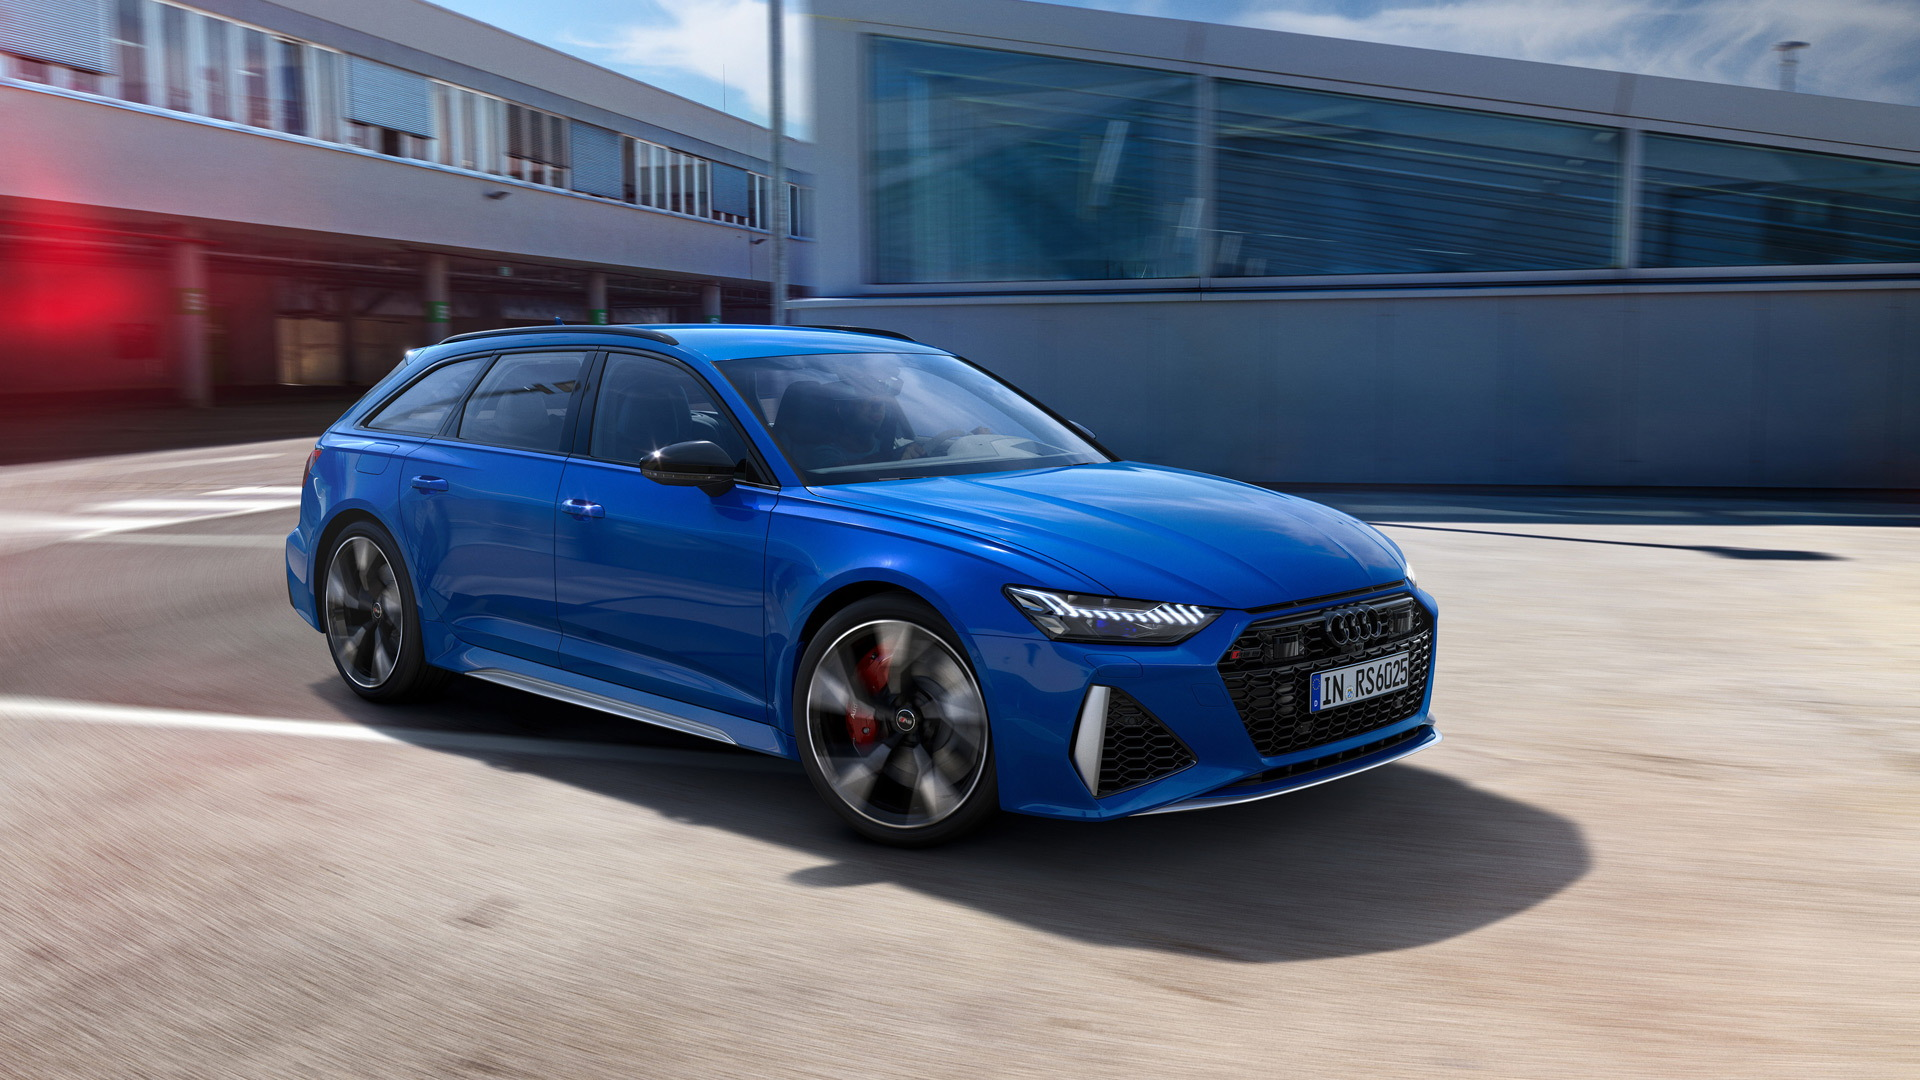 2020 Audi RS 6 Avant in Nogaro Blue